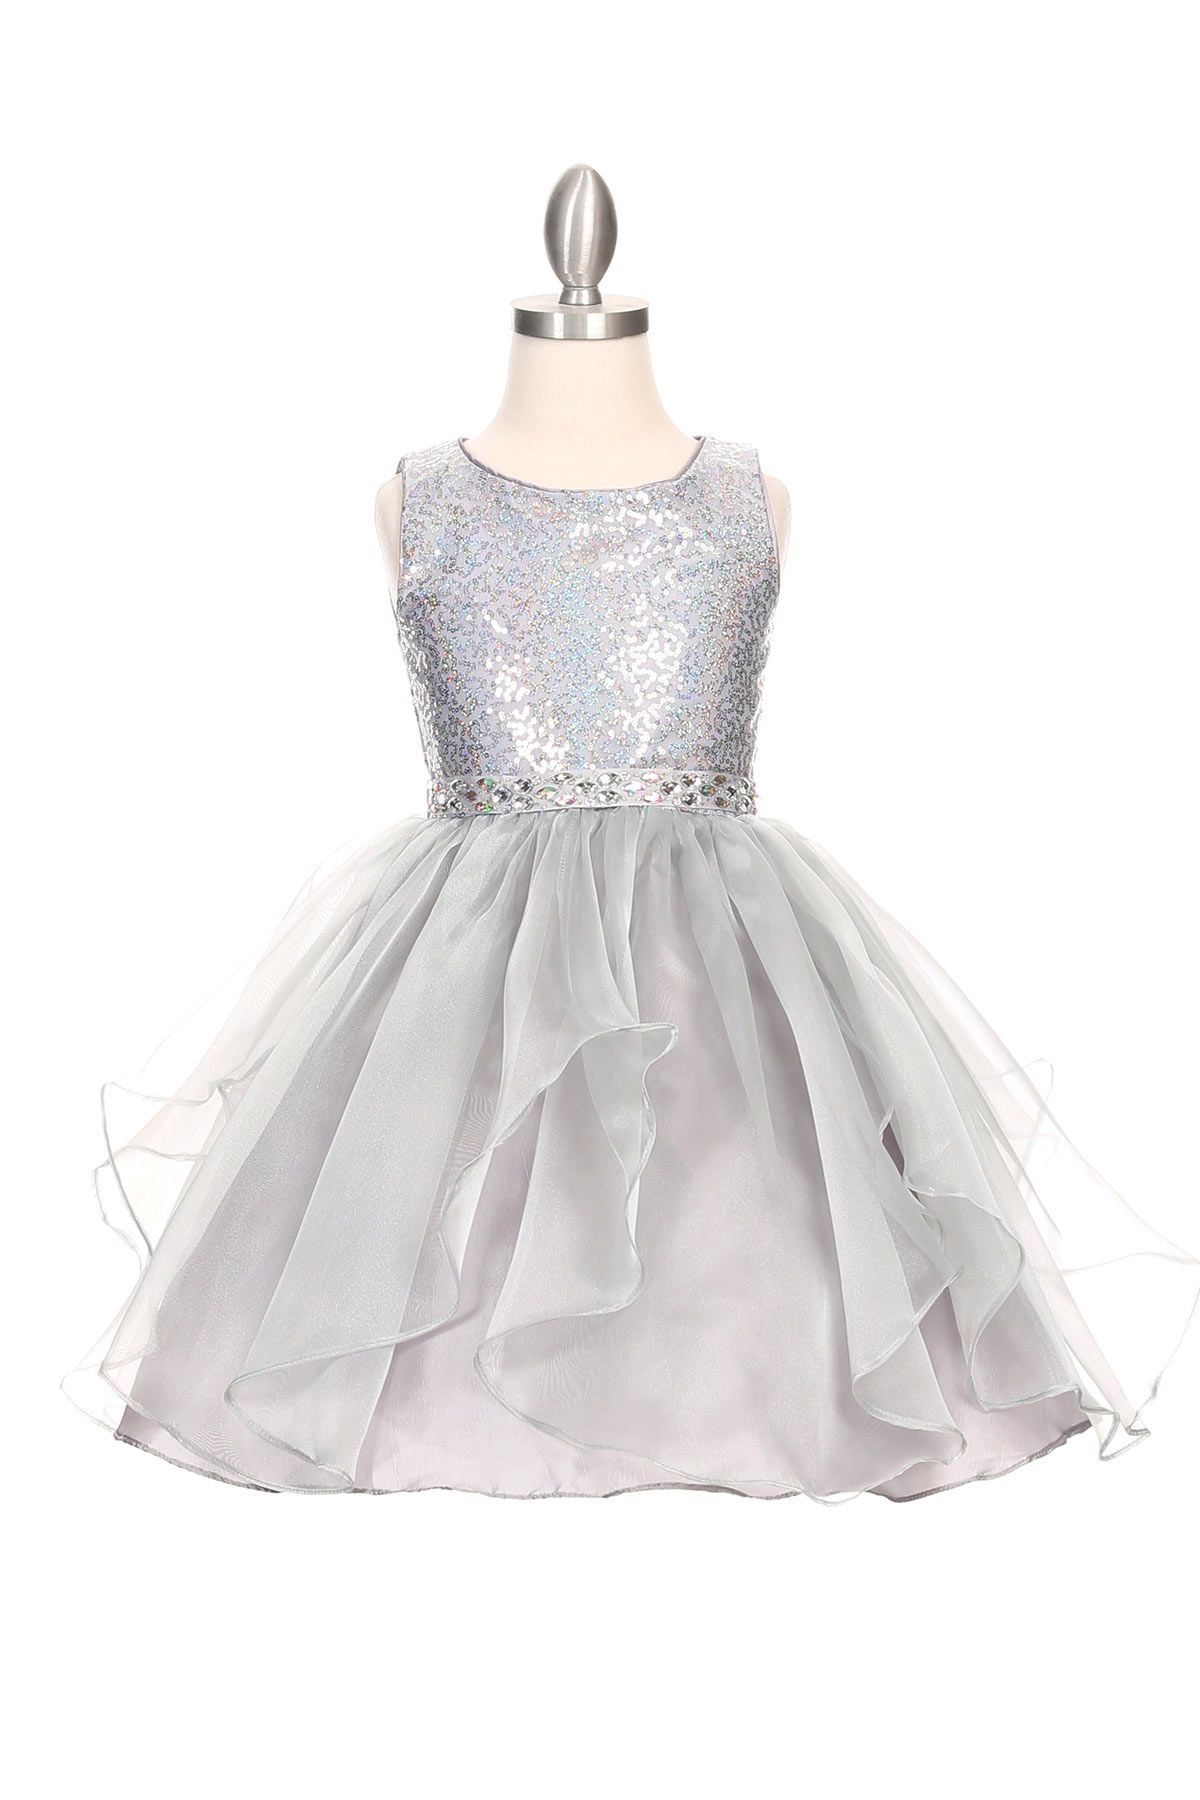 Girls Dress Style 1207 - Sleveeless Organza Sequin Dress in Choice of Color  If you are looking for sparkle this dress is it. This dress is such a cute style and so much fun for any occasion. The bodice on this dress has beautiful sequin detailing and the waist is accented with a gorgeous detachable rhinestone sash.  http://www.flowergirldressforless.com/mm5/merchant.mvc?Screen=PROD&Product_Code=CC_1207SV&Store_Code=Flower-Girl&Category_Code=New